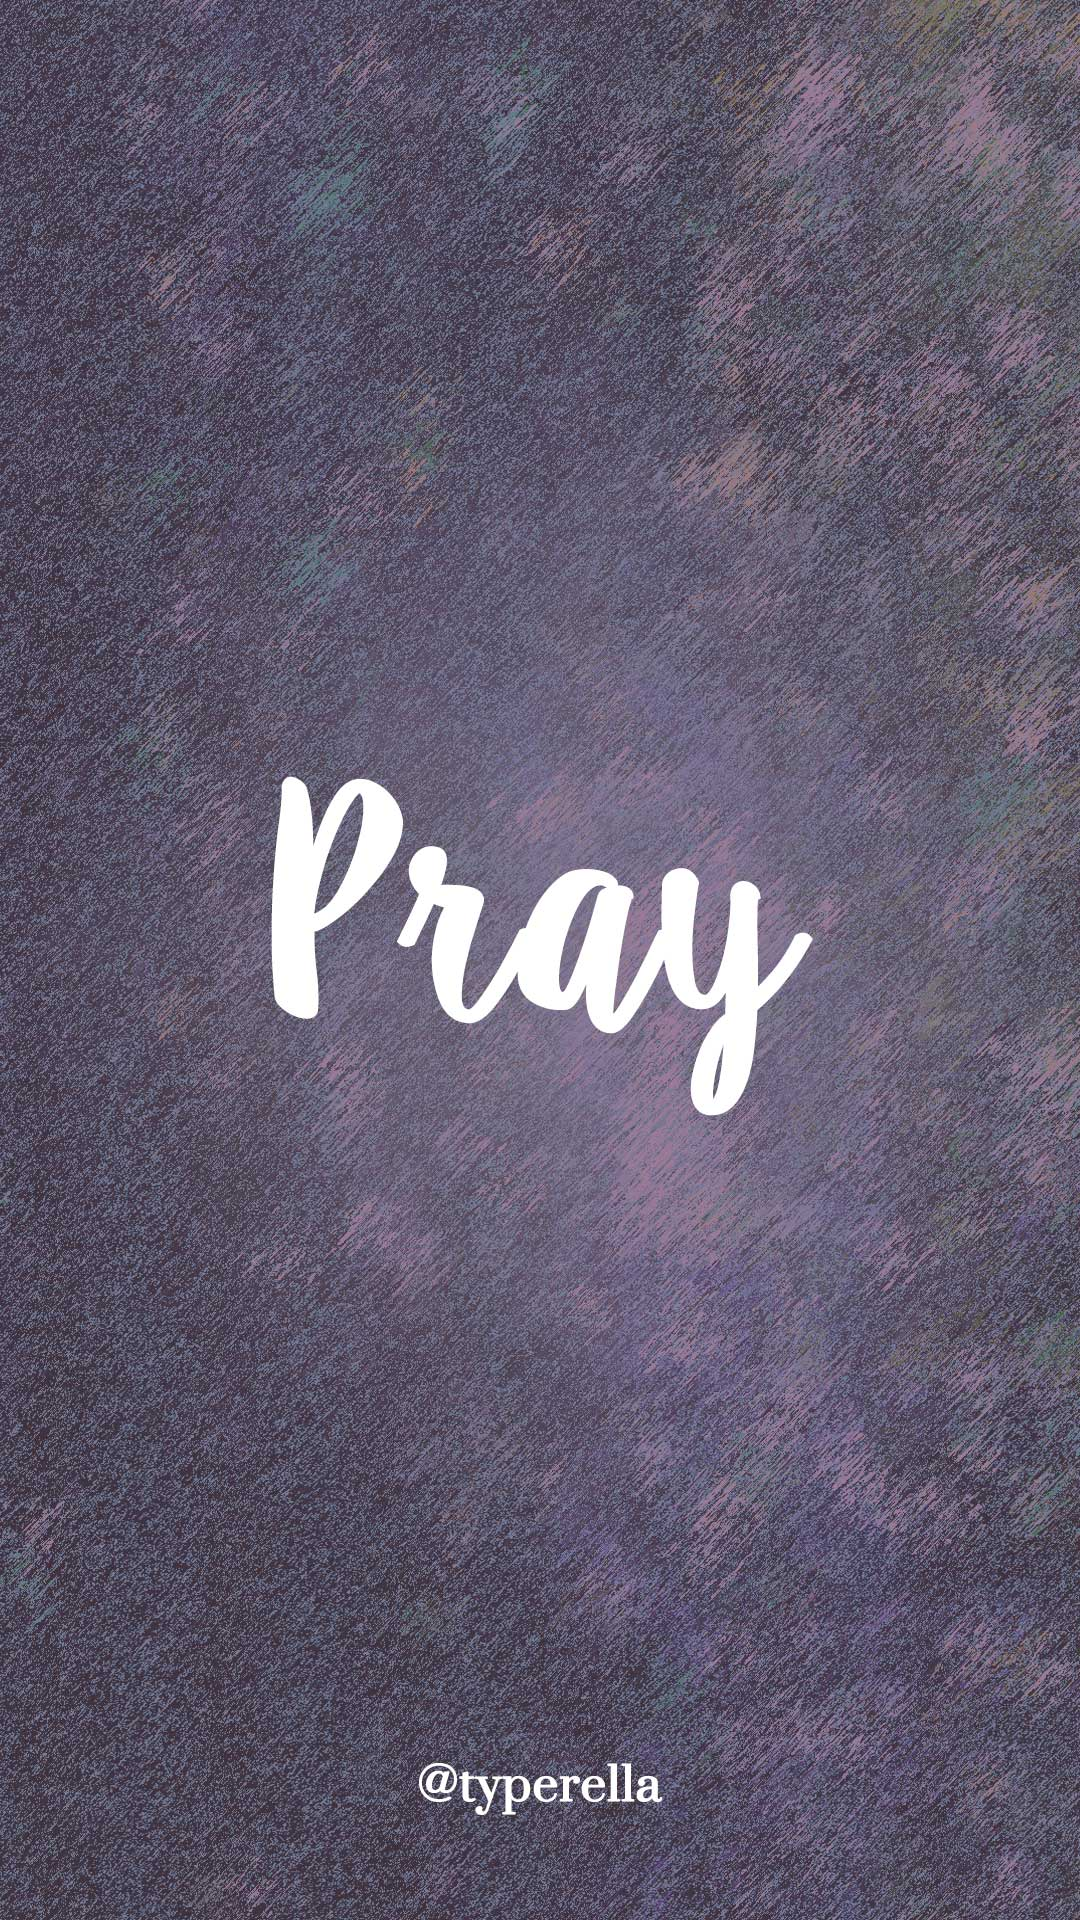 https://typerella.net/free-phone-wallpapers #pray #wallpaper ...